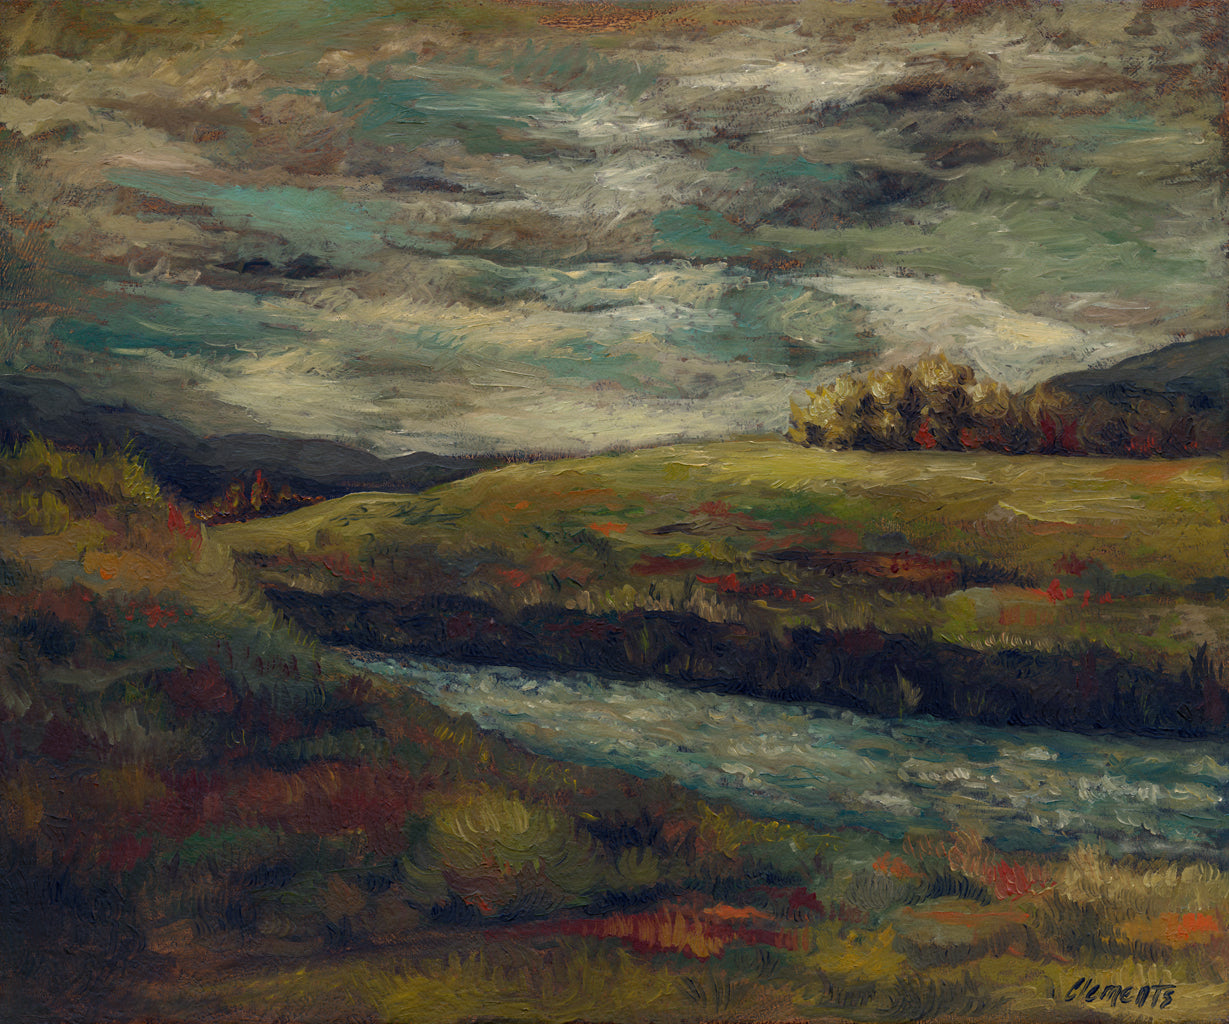 Dark Brooding Stormy River Landscape Painting Giclée Print